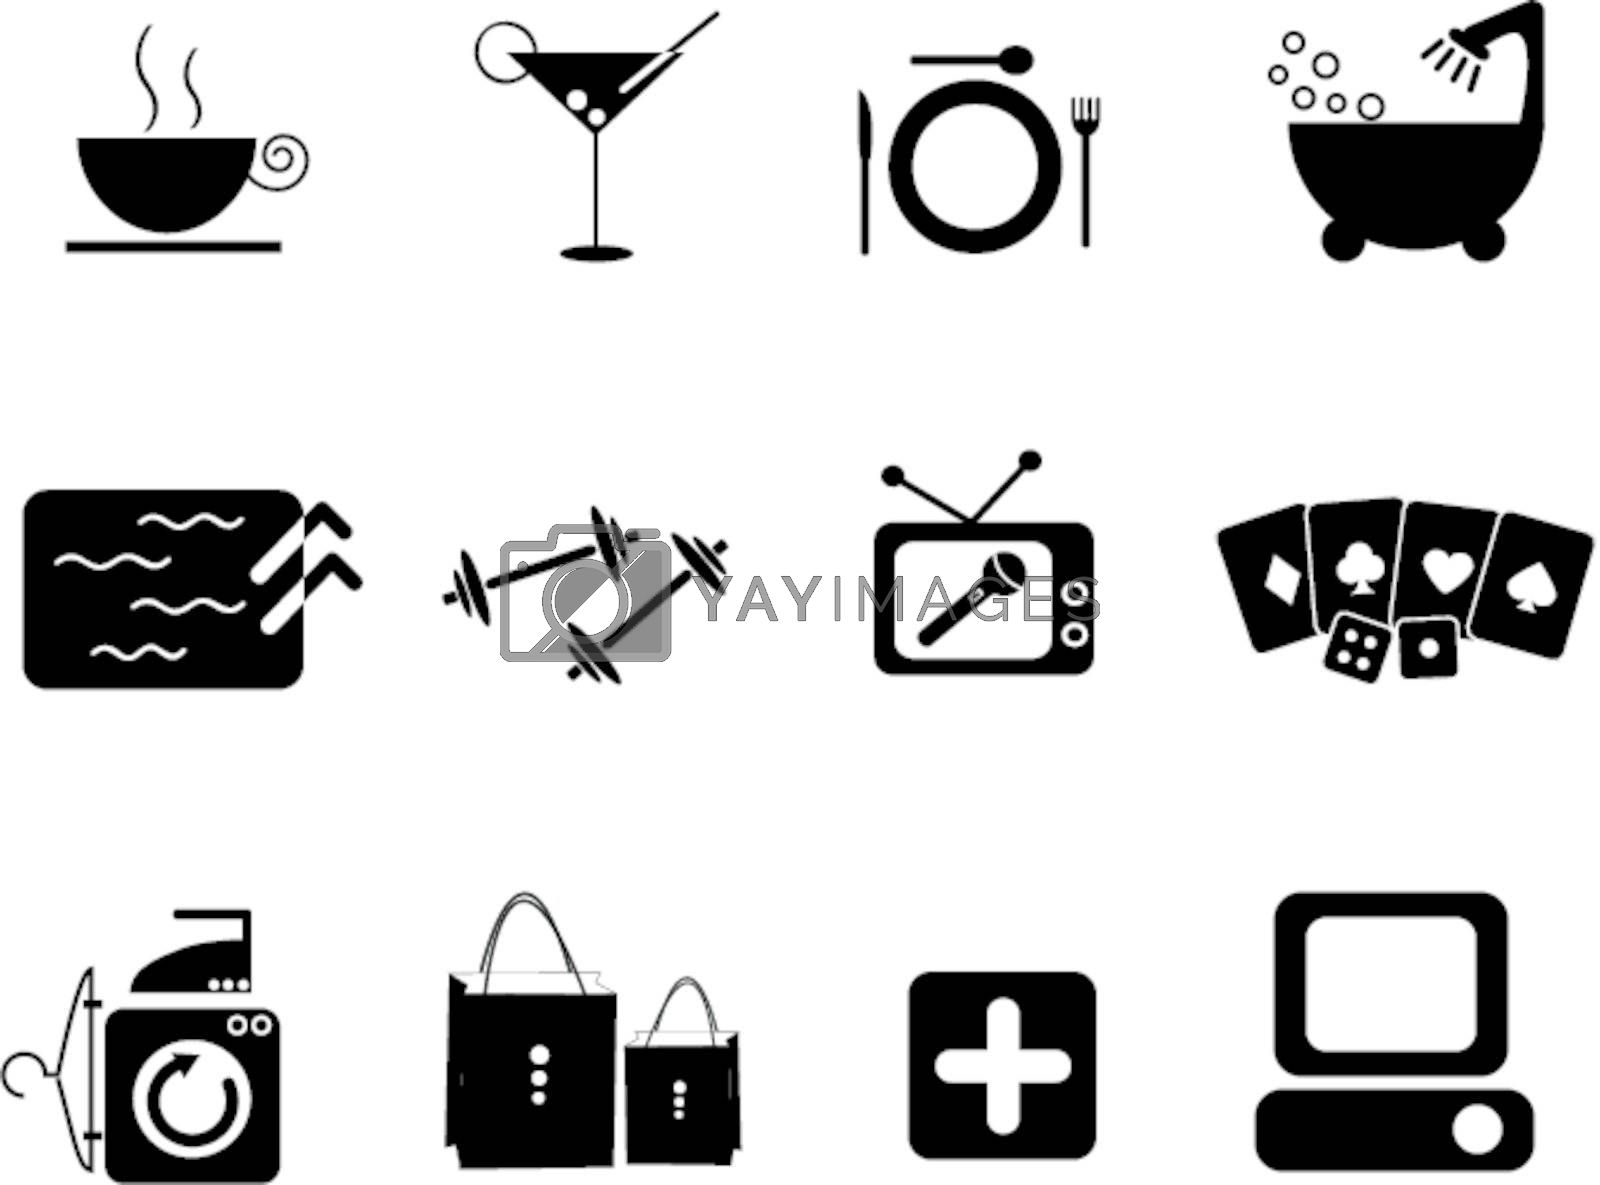 Amenities icon for hotel and club